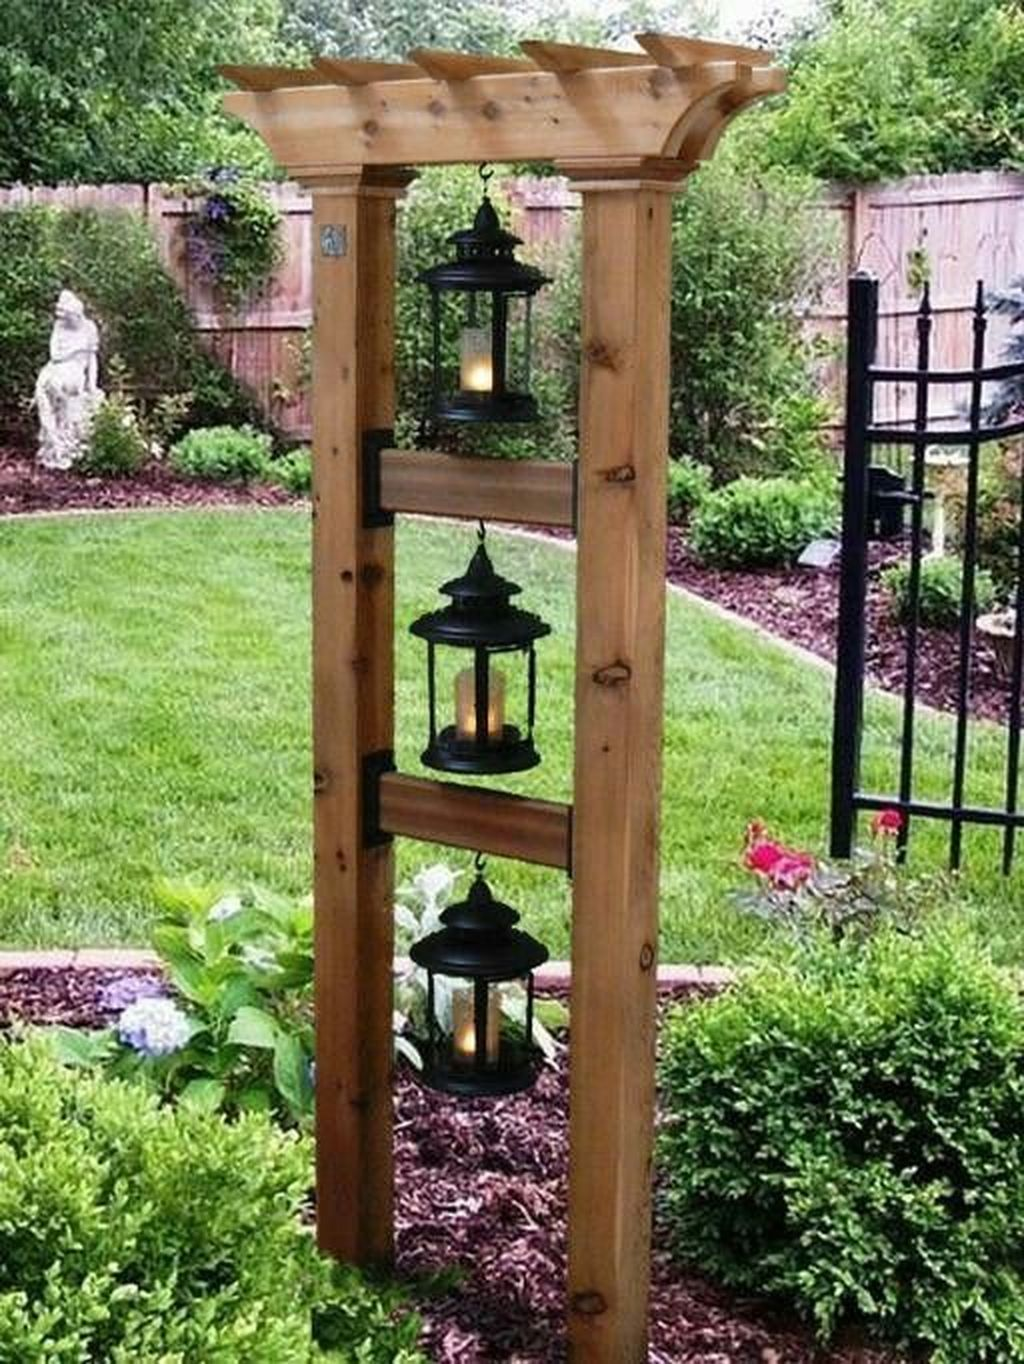 Stunning Backyard Flower Garden Ideas You Should Copy Now 08